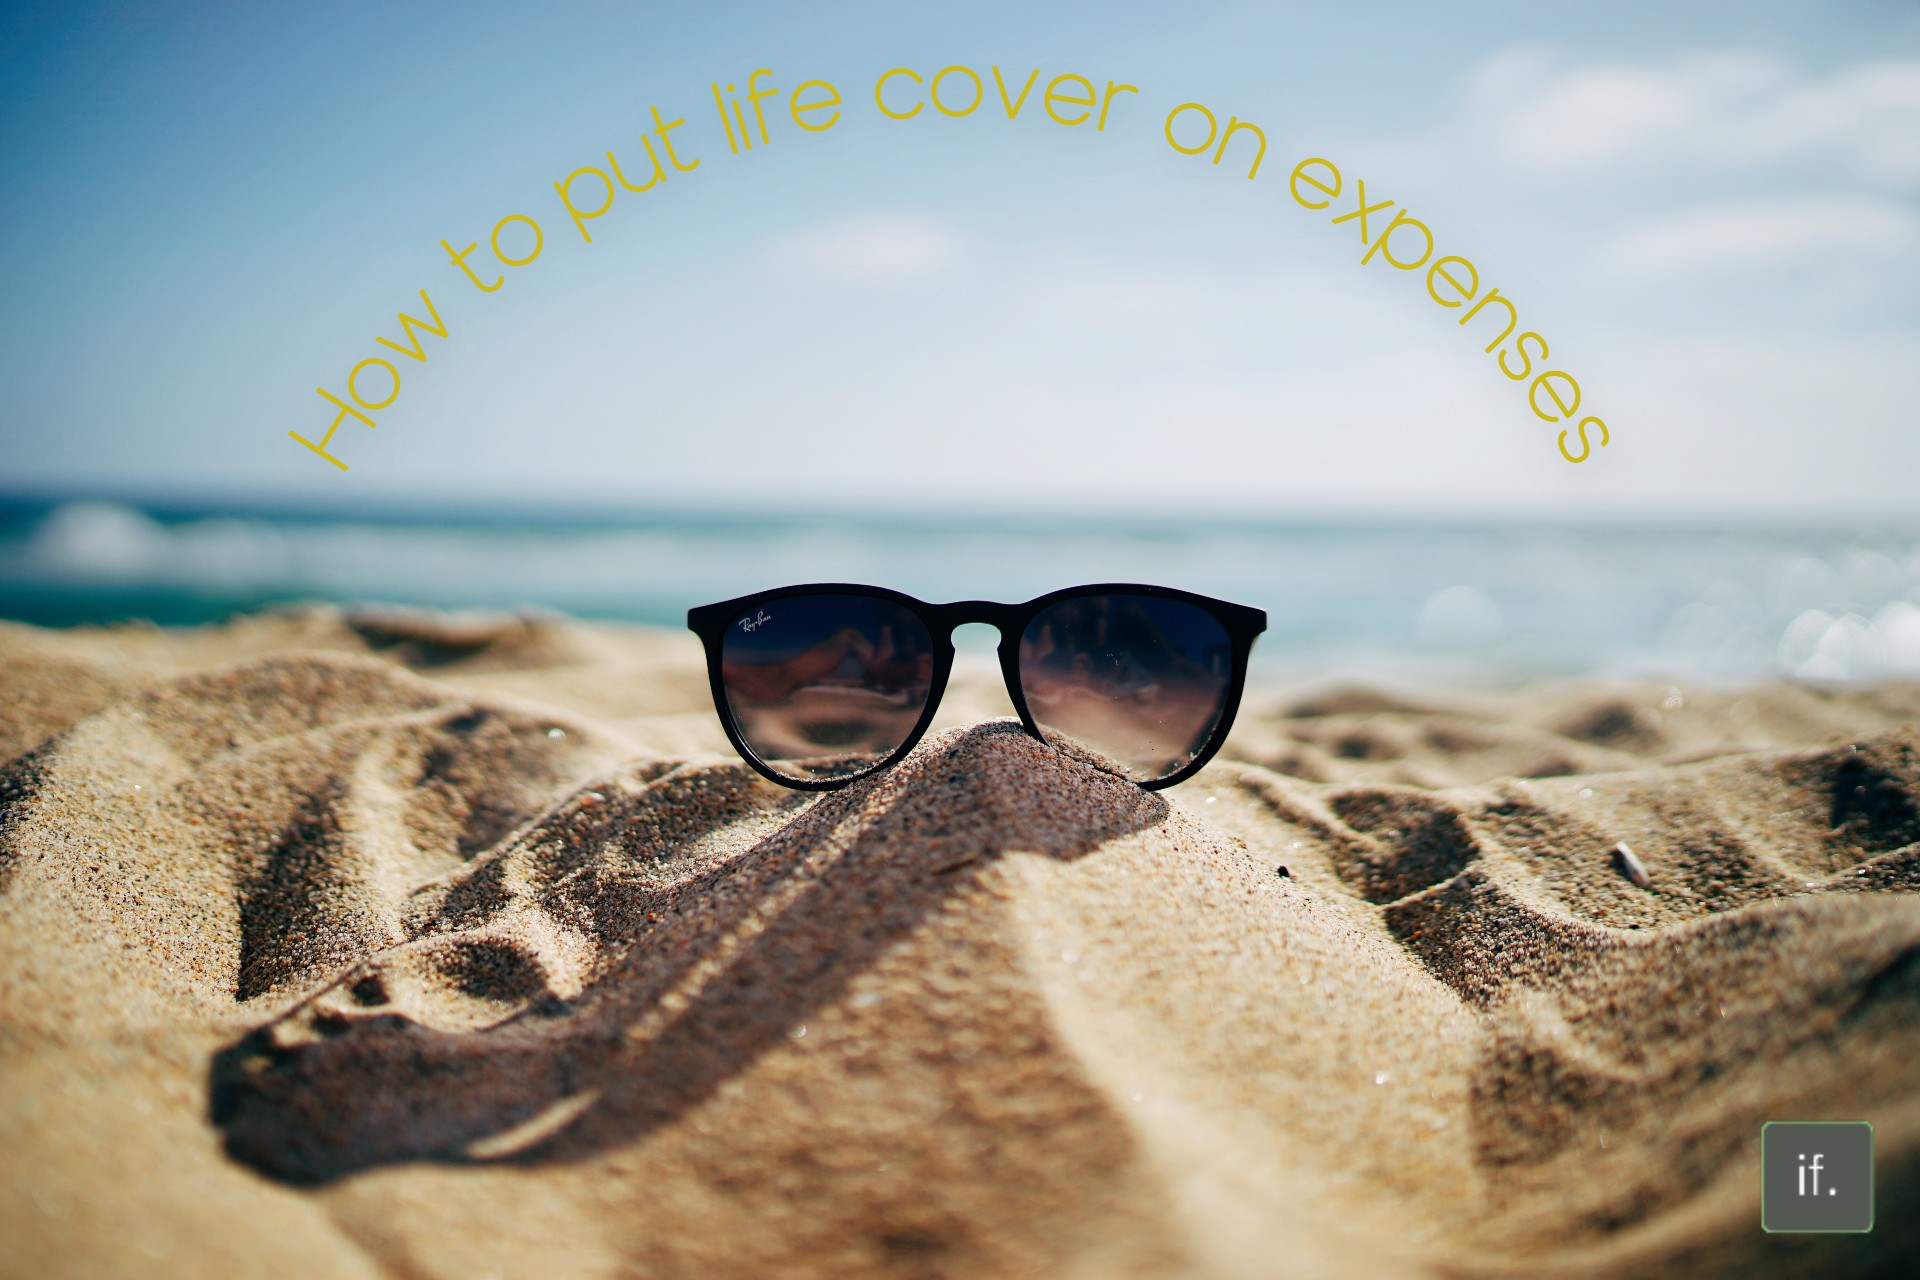 How to put life cover on expenses